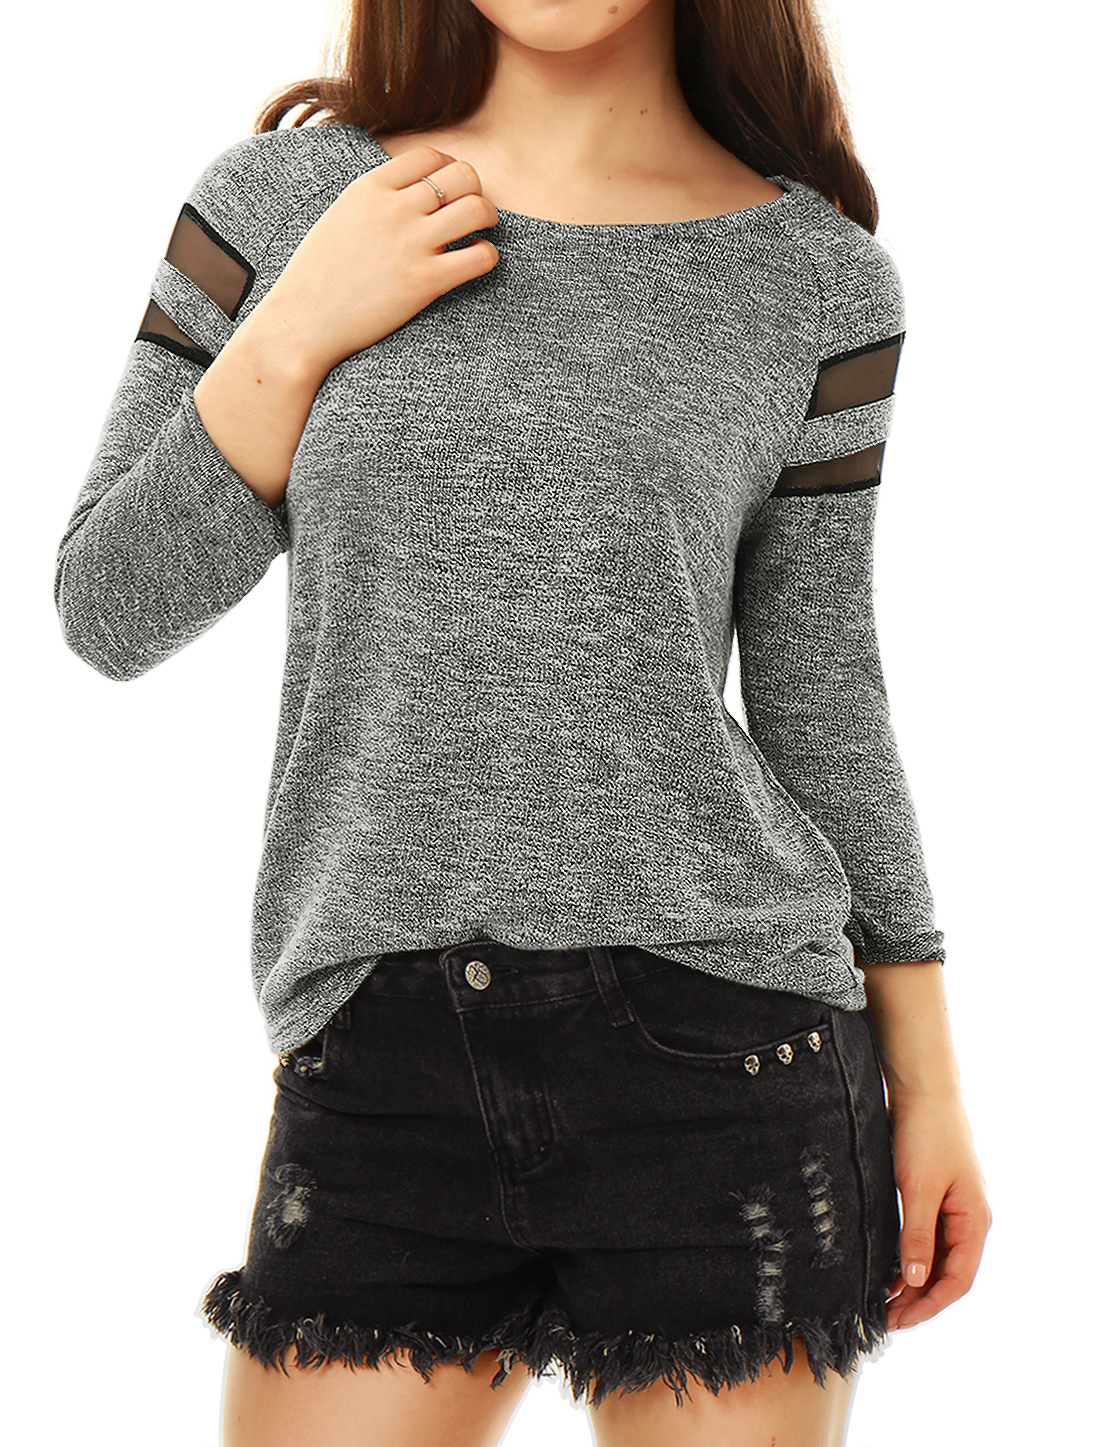 Ladies Mesh Panel Raglan Sleeve Casual Tee Shirt Heather Gray S